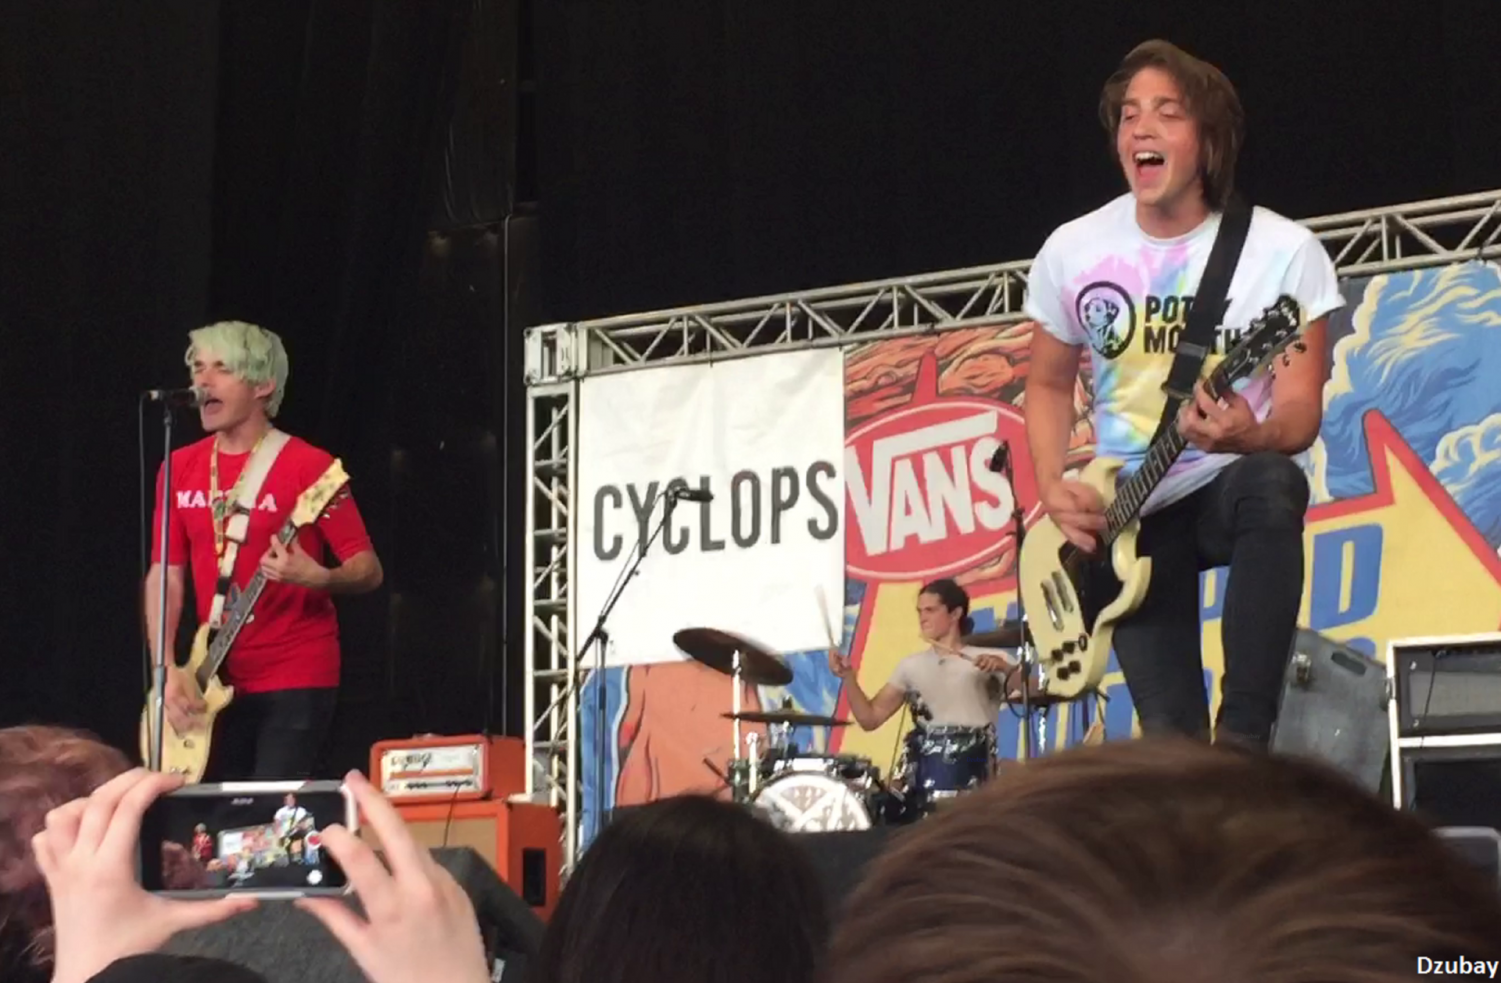 Waterparks, a pop rock trio from Houston, TX, are likely to play next year's Vans Warped Tour.